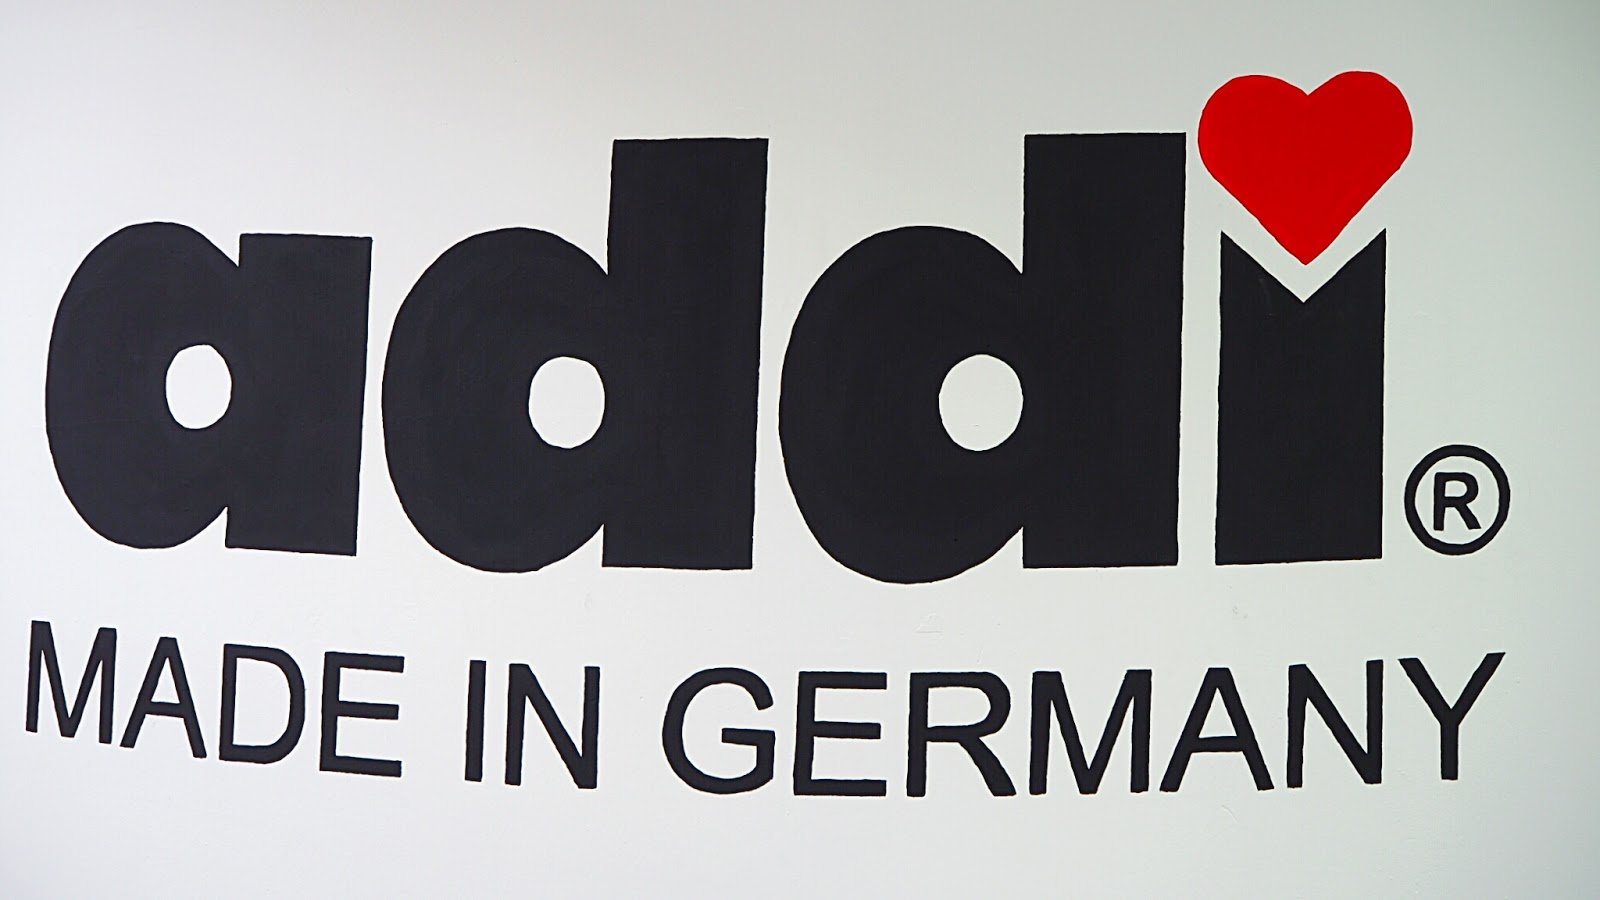 addi - made in Germany